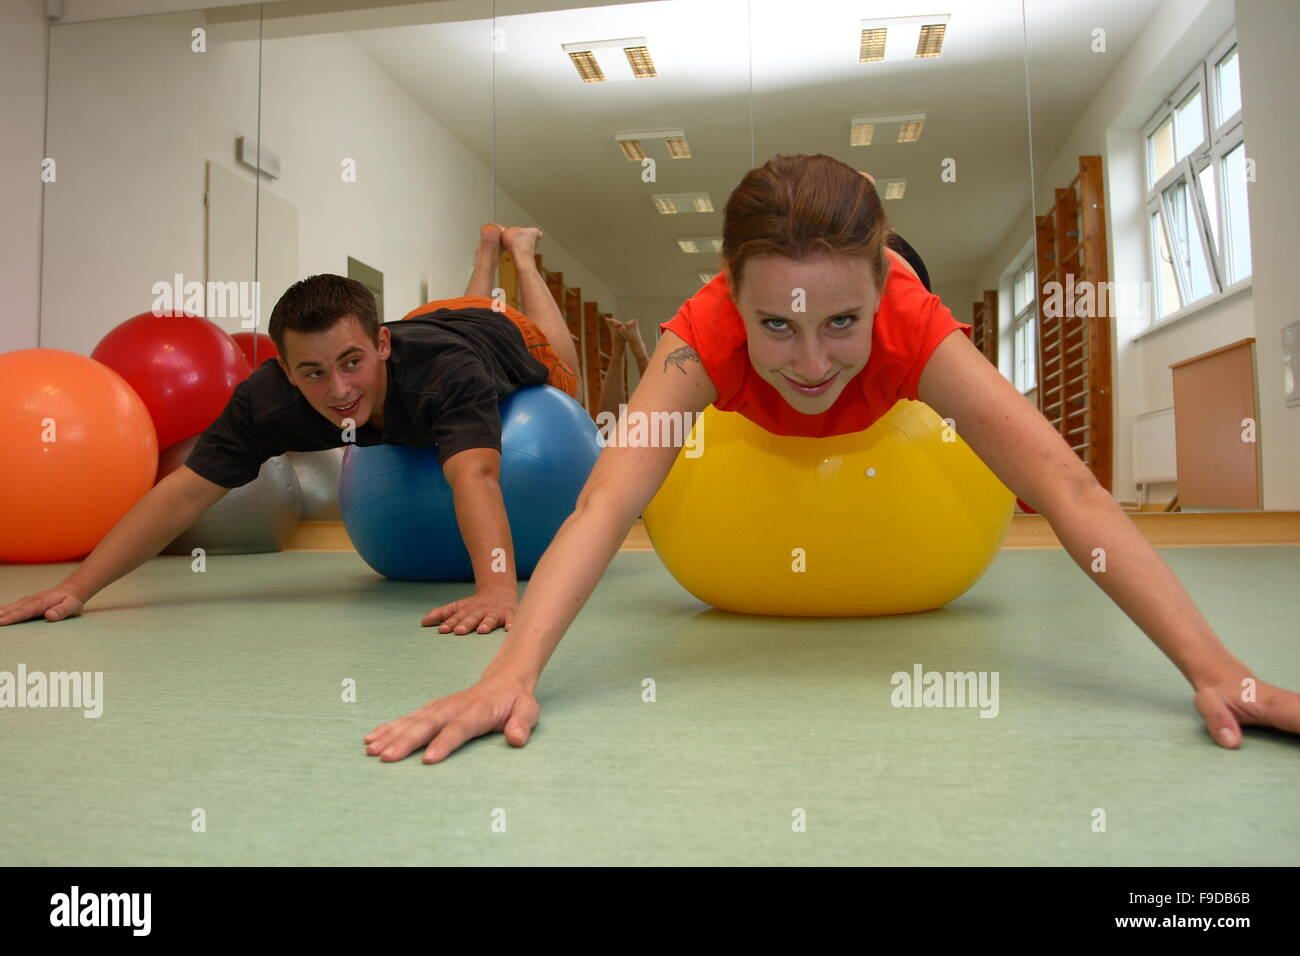 Young Couple Exercising On Fitness Balls - Stock Image